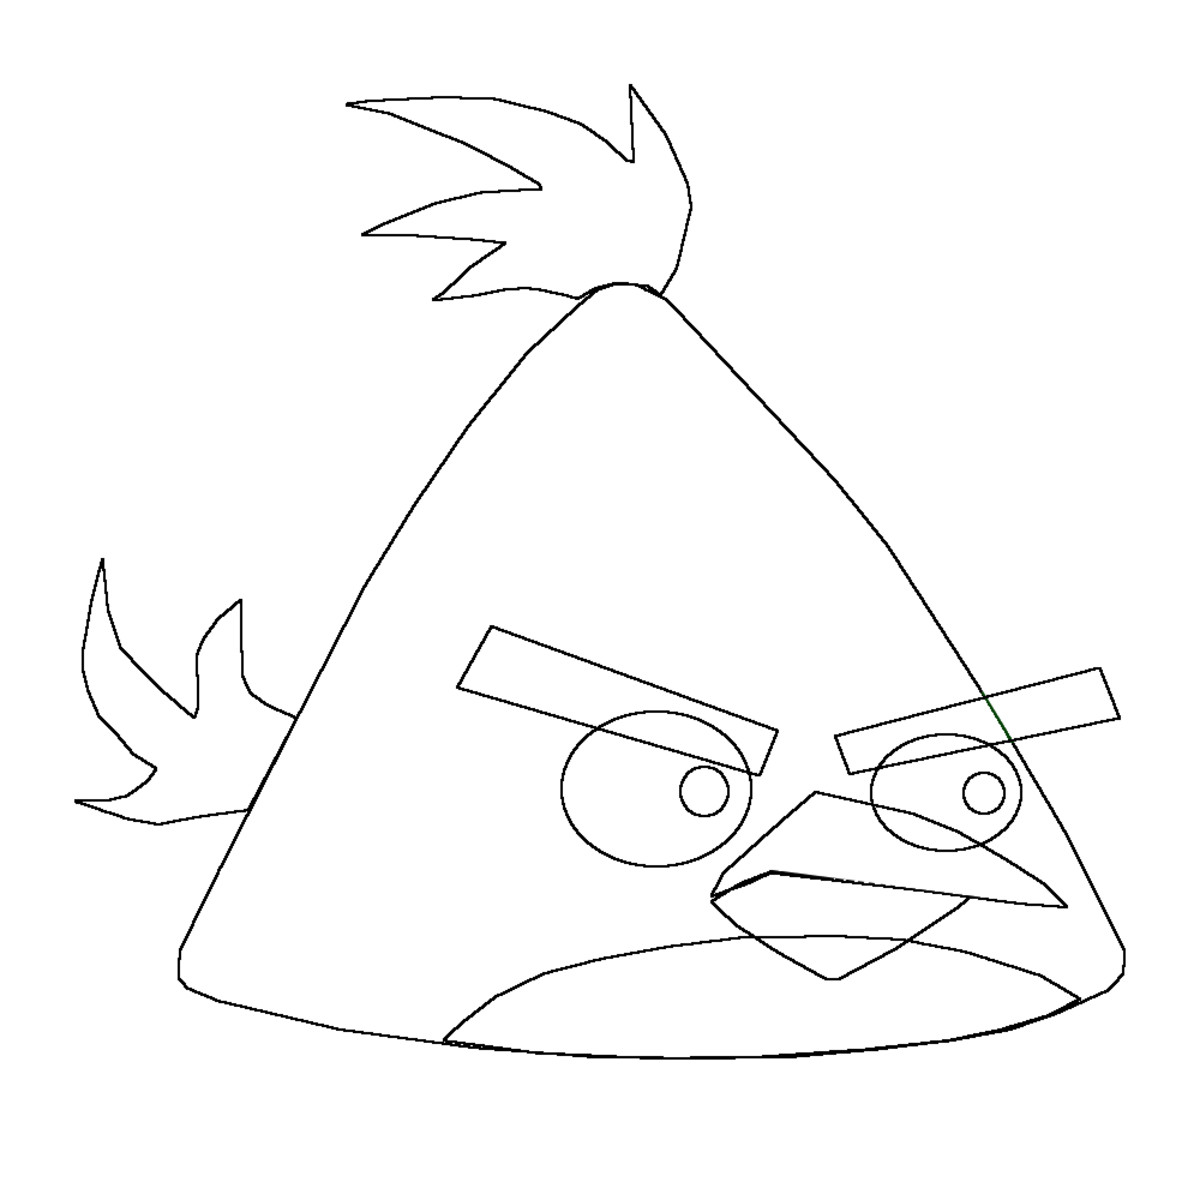 Tail feathers and plumage on the Angry Birds head.